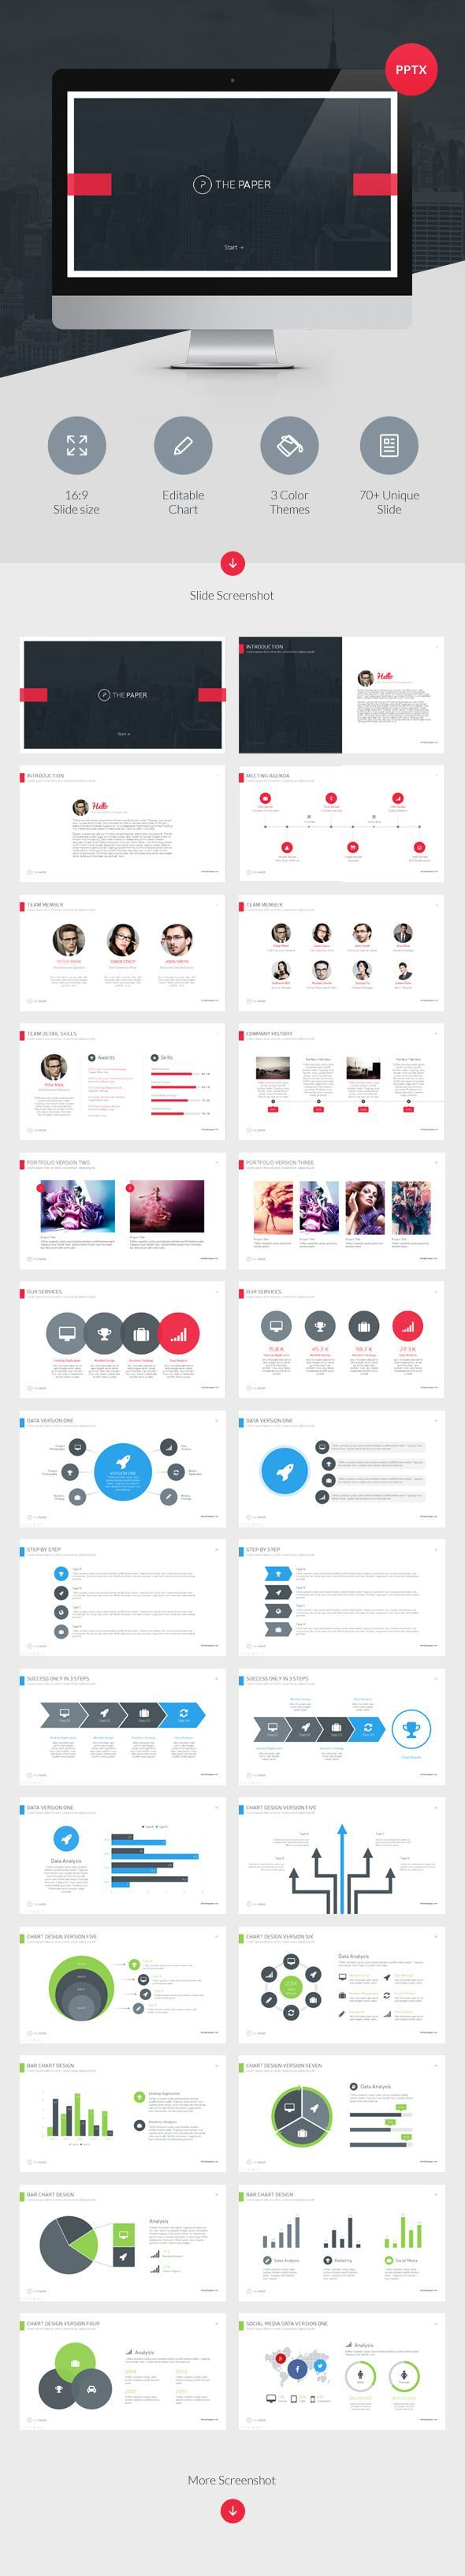 The Paper - Powerpoint Presentation Template - Business Powerpoint Templates: